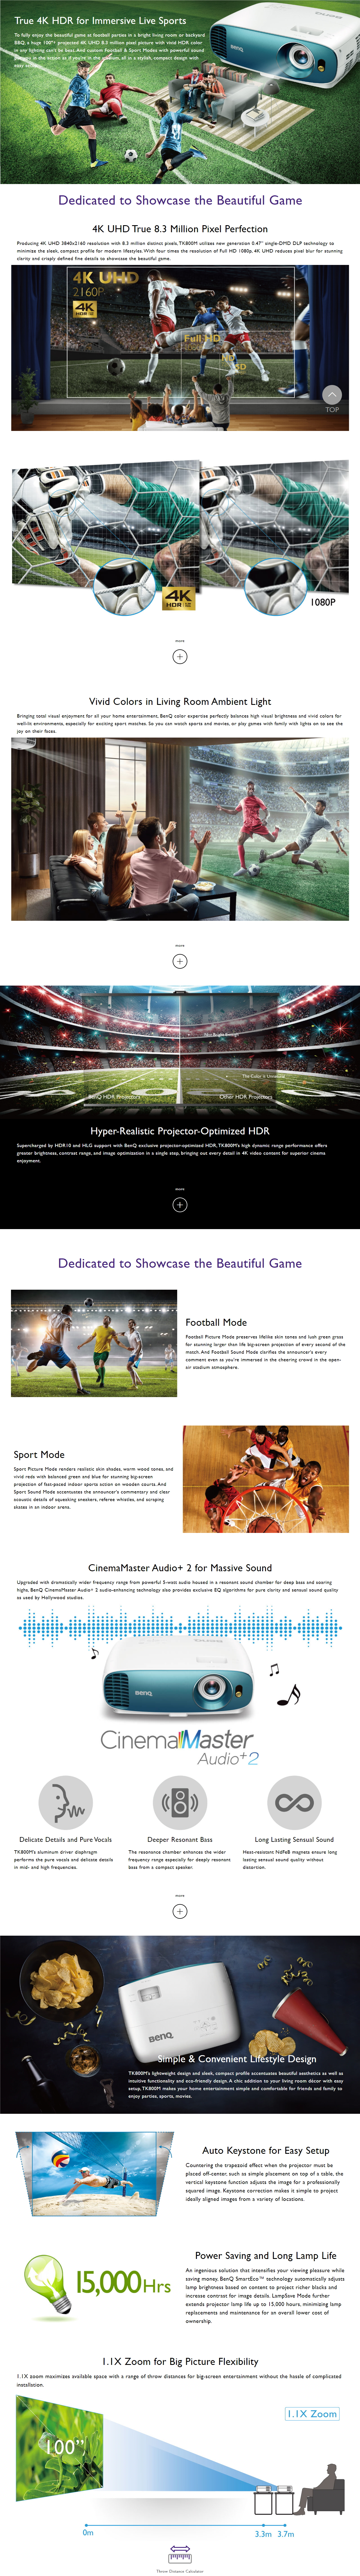 A large marketing image providing additional information about the product BenQ TK800M 3000LM 4K Home Entertainment Projector - Additional alt info not provided